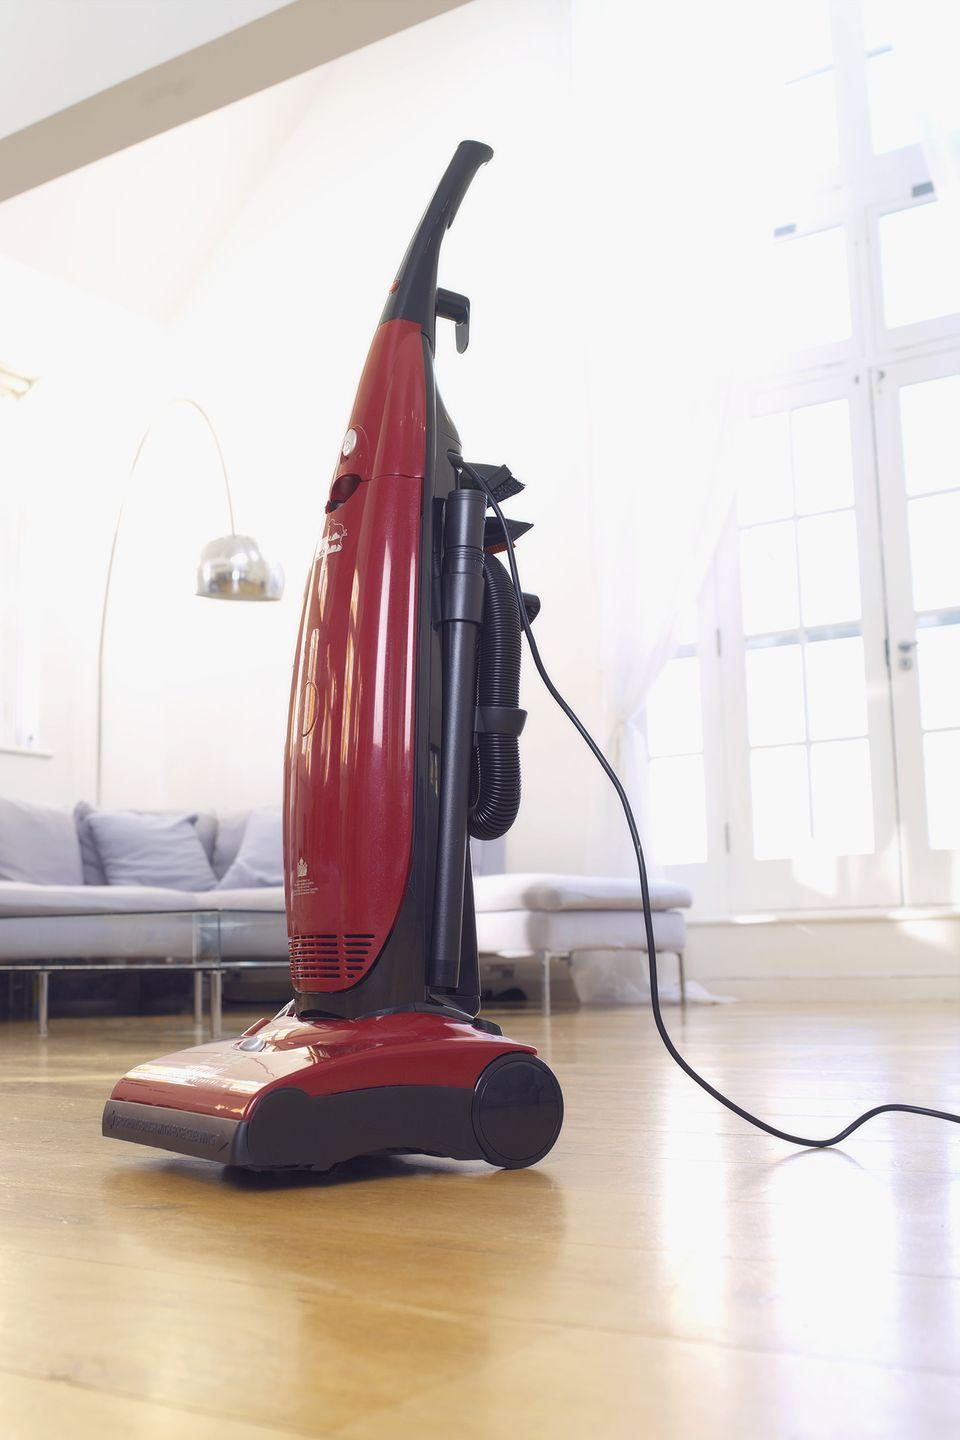 """<p>Gizmos like vacuum cleaners tend not to hold up for very long, according to <a href=""""https://www.consumerreports.org/vacuum-cleaners/how-long-do-vacuum-cleaners-last/"""" rel=""""nofollow noopener"""" target=""""_blank"""" data-ylk=""""slk:Consumer Reports"""" class=""""link rapid-noclick-resp"""">Consumer Reports</a>. So if possible, it's always best to buy new. And if you are going to pick one up from your local thrift store, you should always test it—and all other electric-powered products—before you purchase. </p>"""